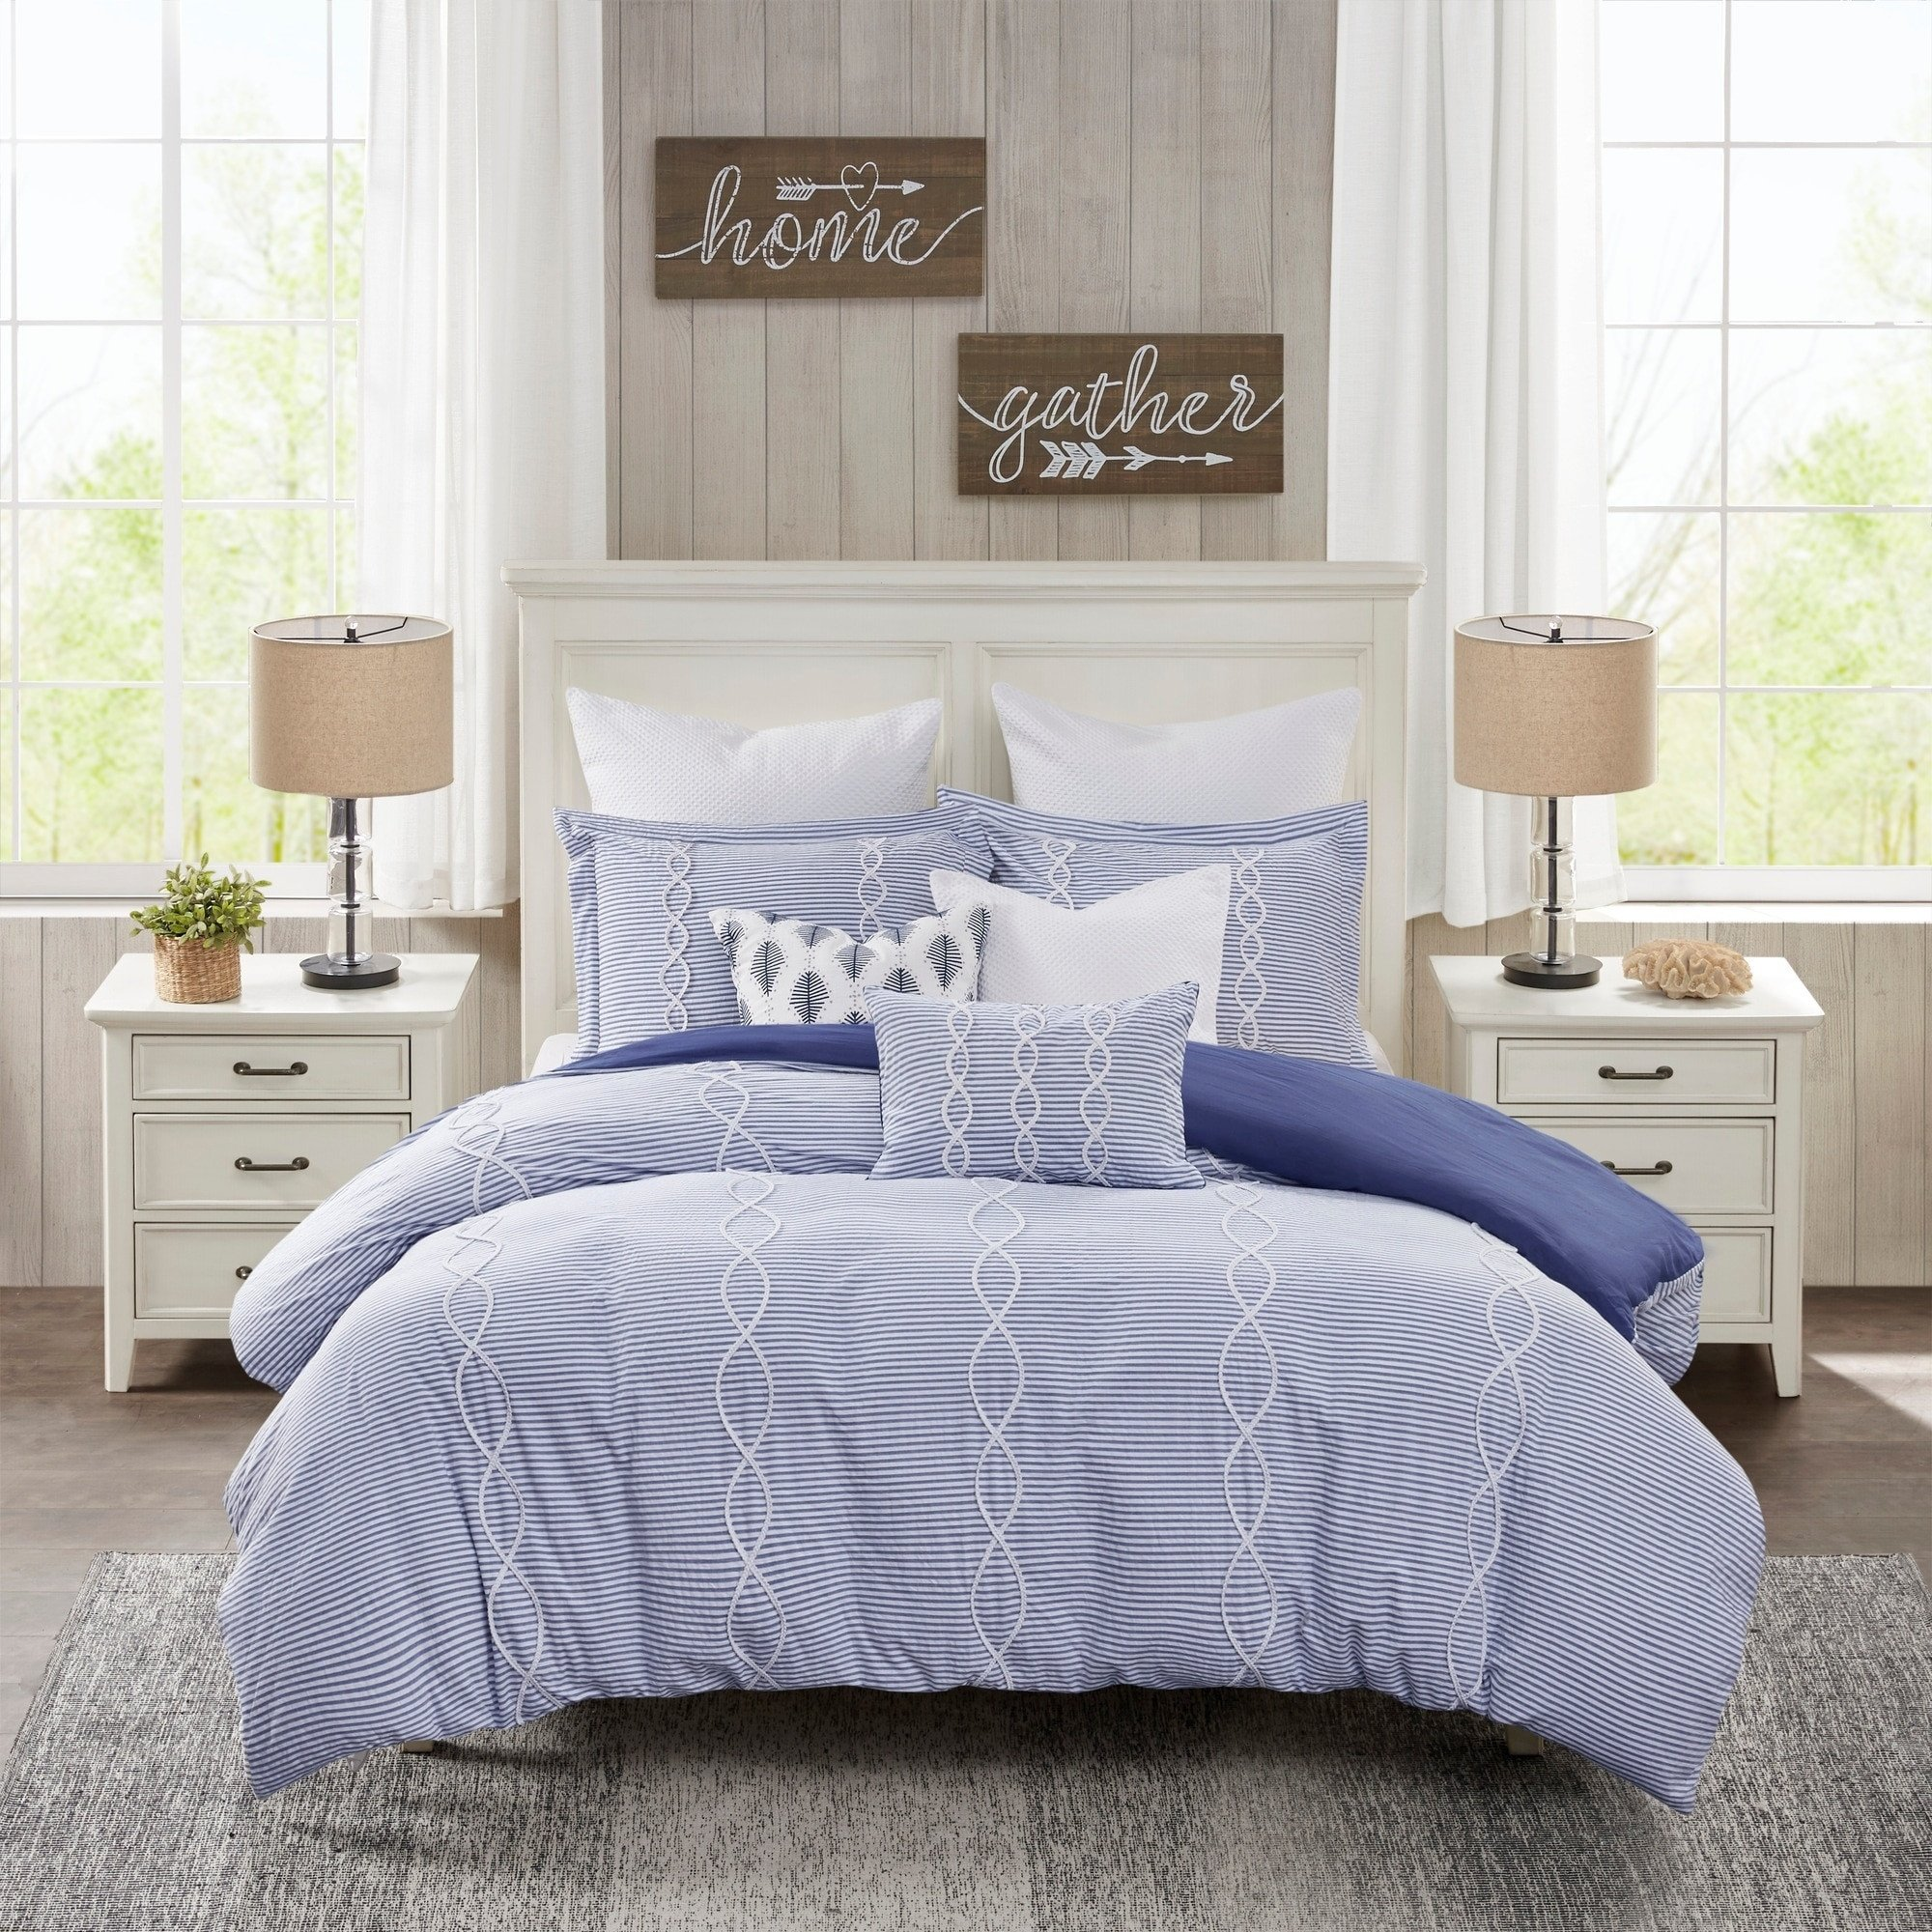 King Bedroom Comforter Set Best Of Madison Park Signature Coastal Farmhouse Blue forter Set